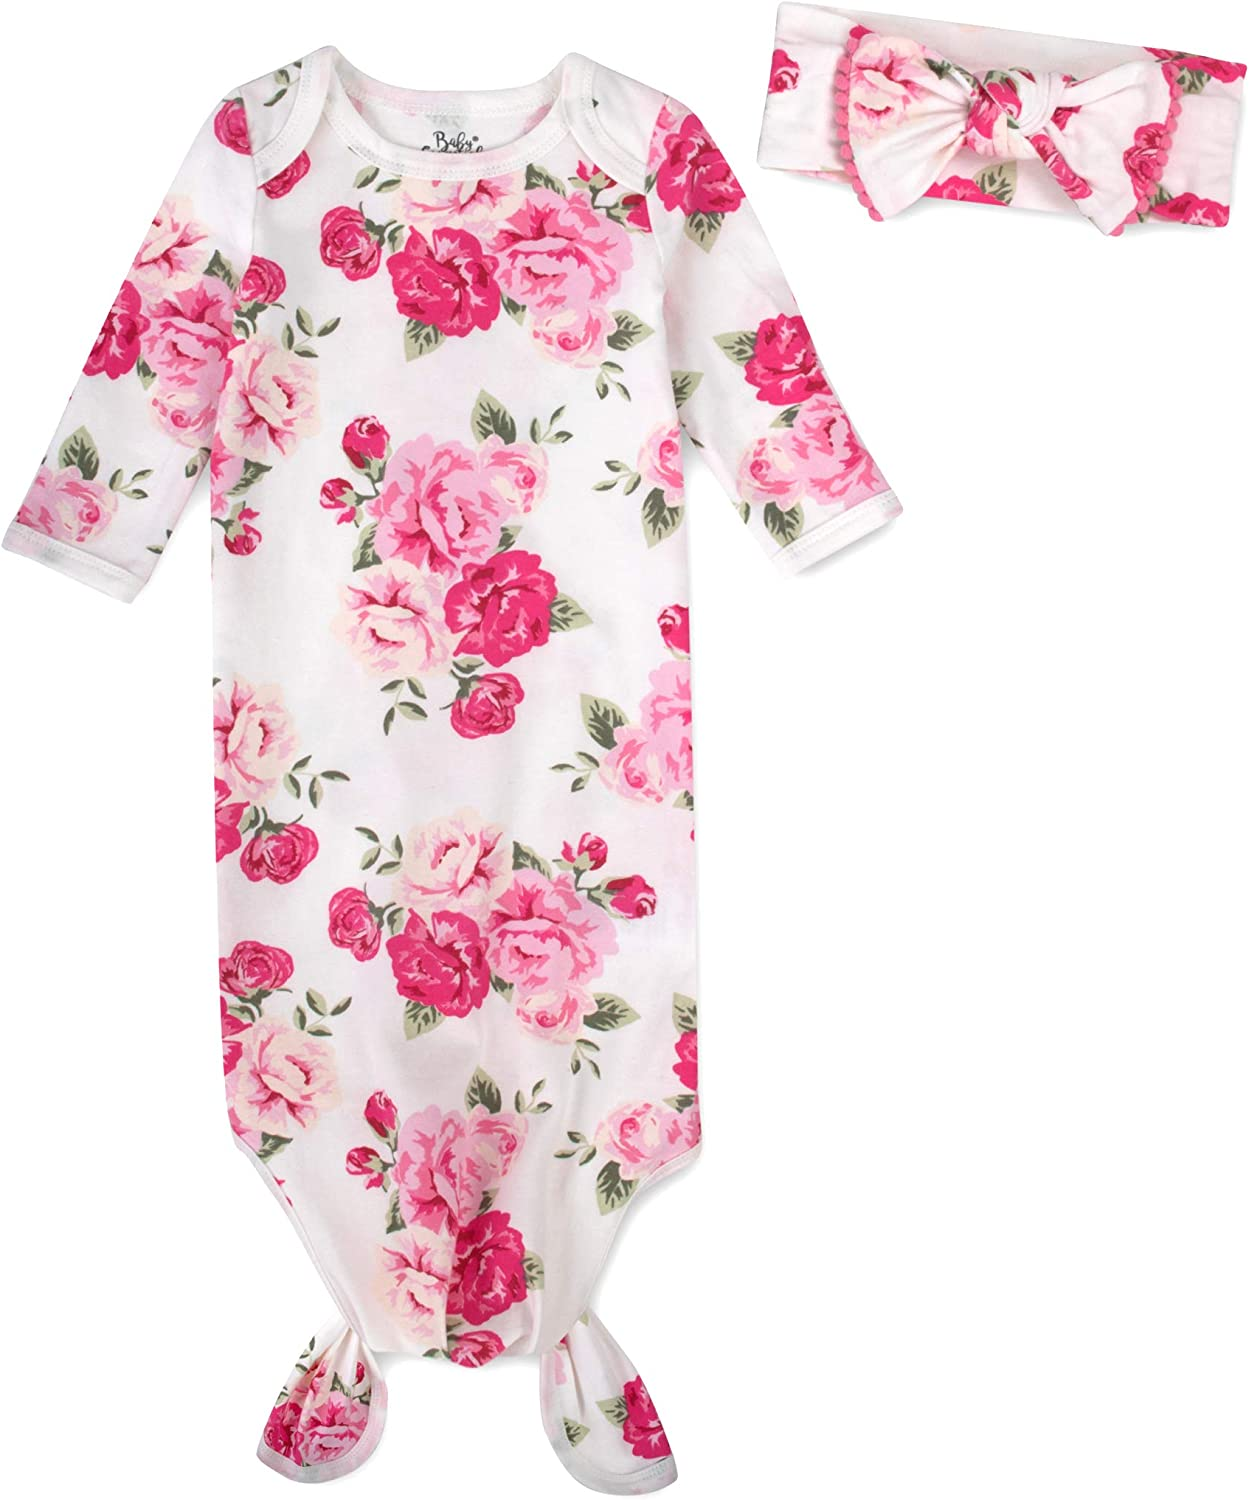 Coming Home Outfit for Baby Girl Newborn Knotted Infant Sleeper Gown with Headband 0-3 Months